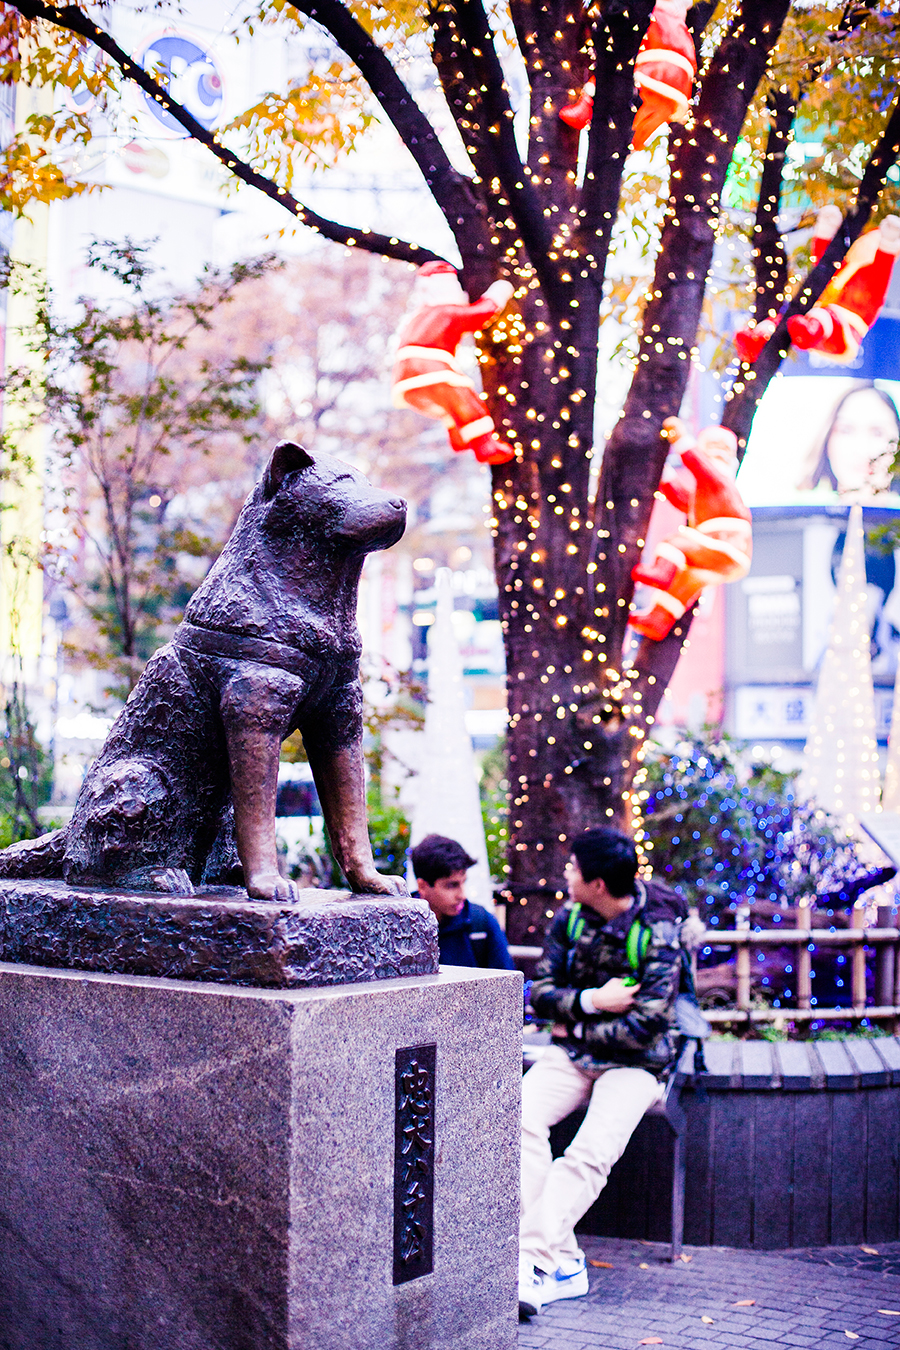 Statue of Hachiko in Shibuya, Japan.